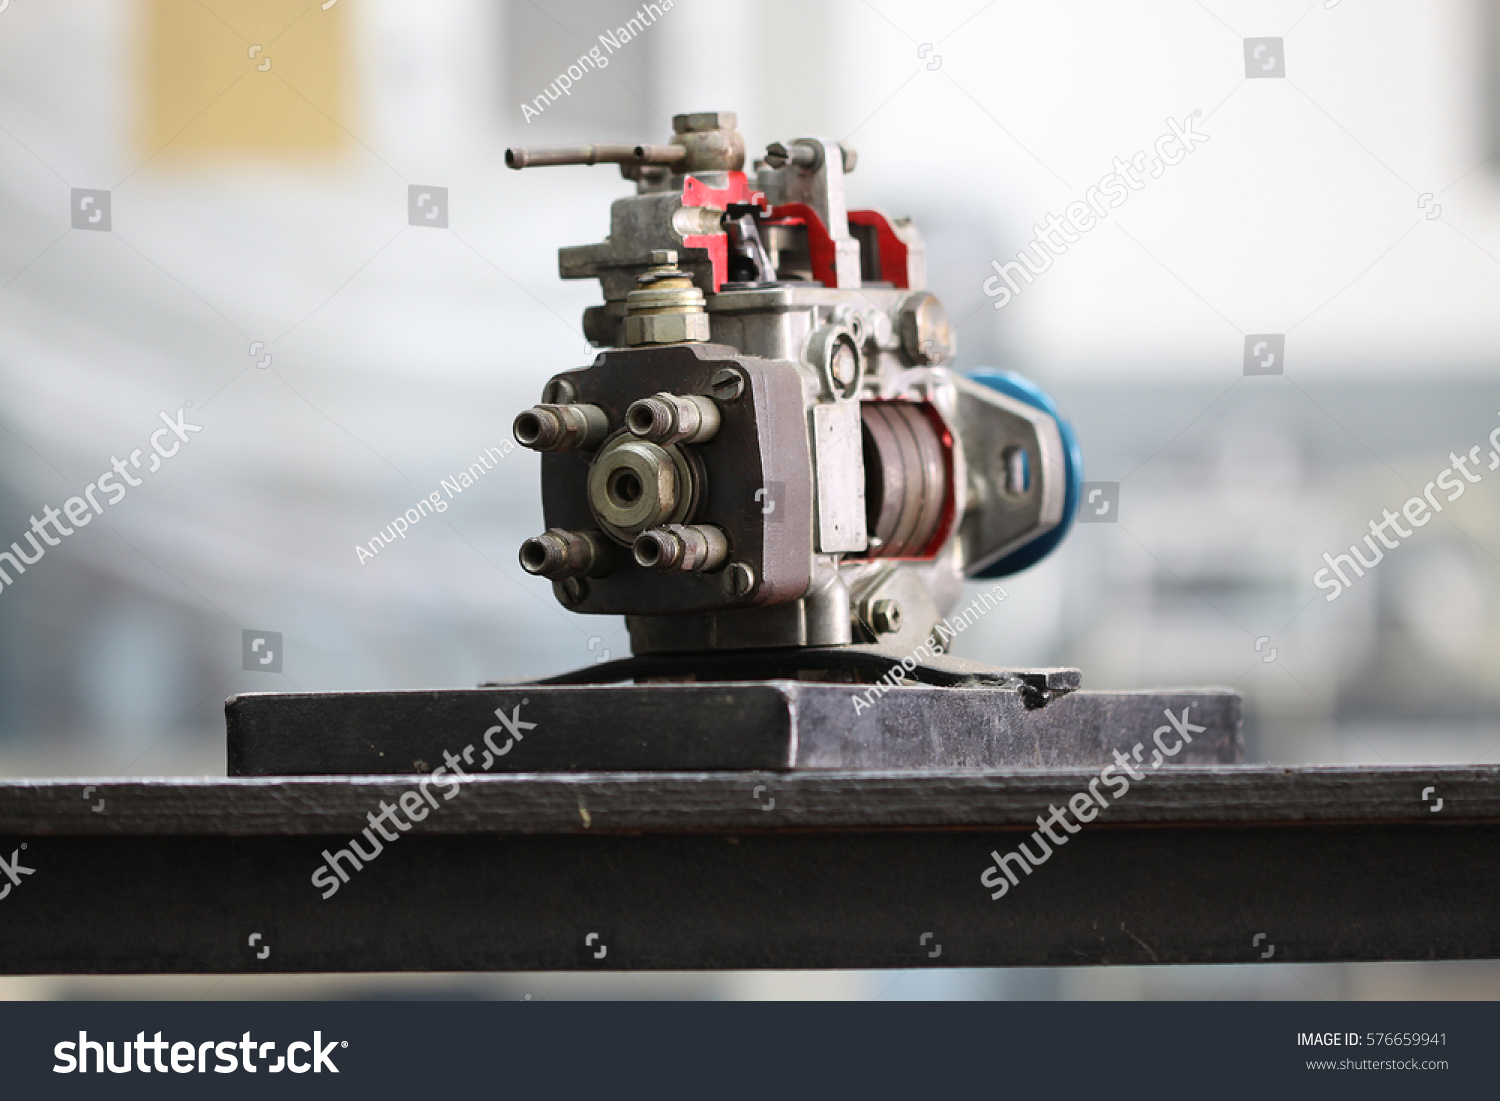 Diesel Pump Prepare Workshop Repair Service Stock Photo (Edit Now